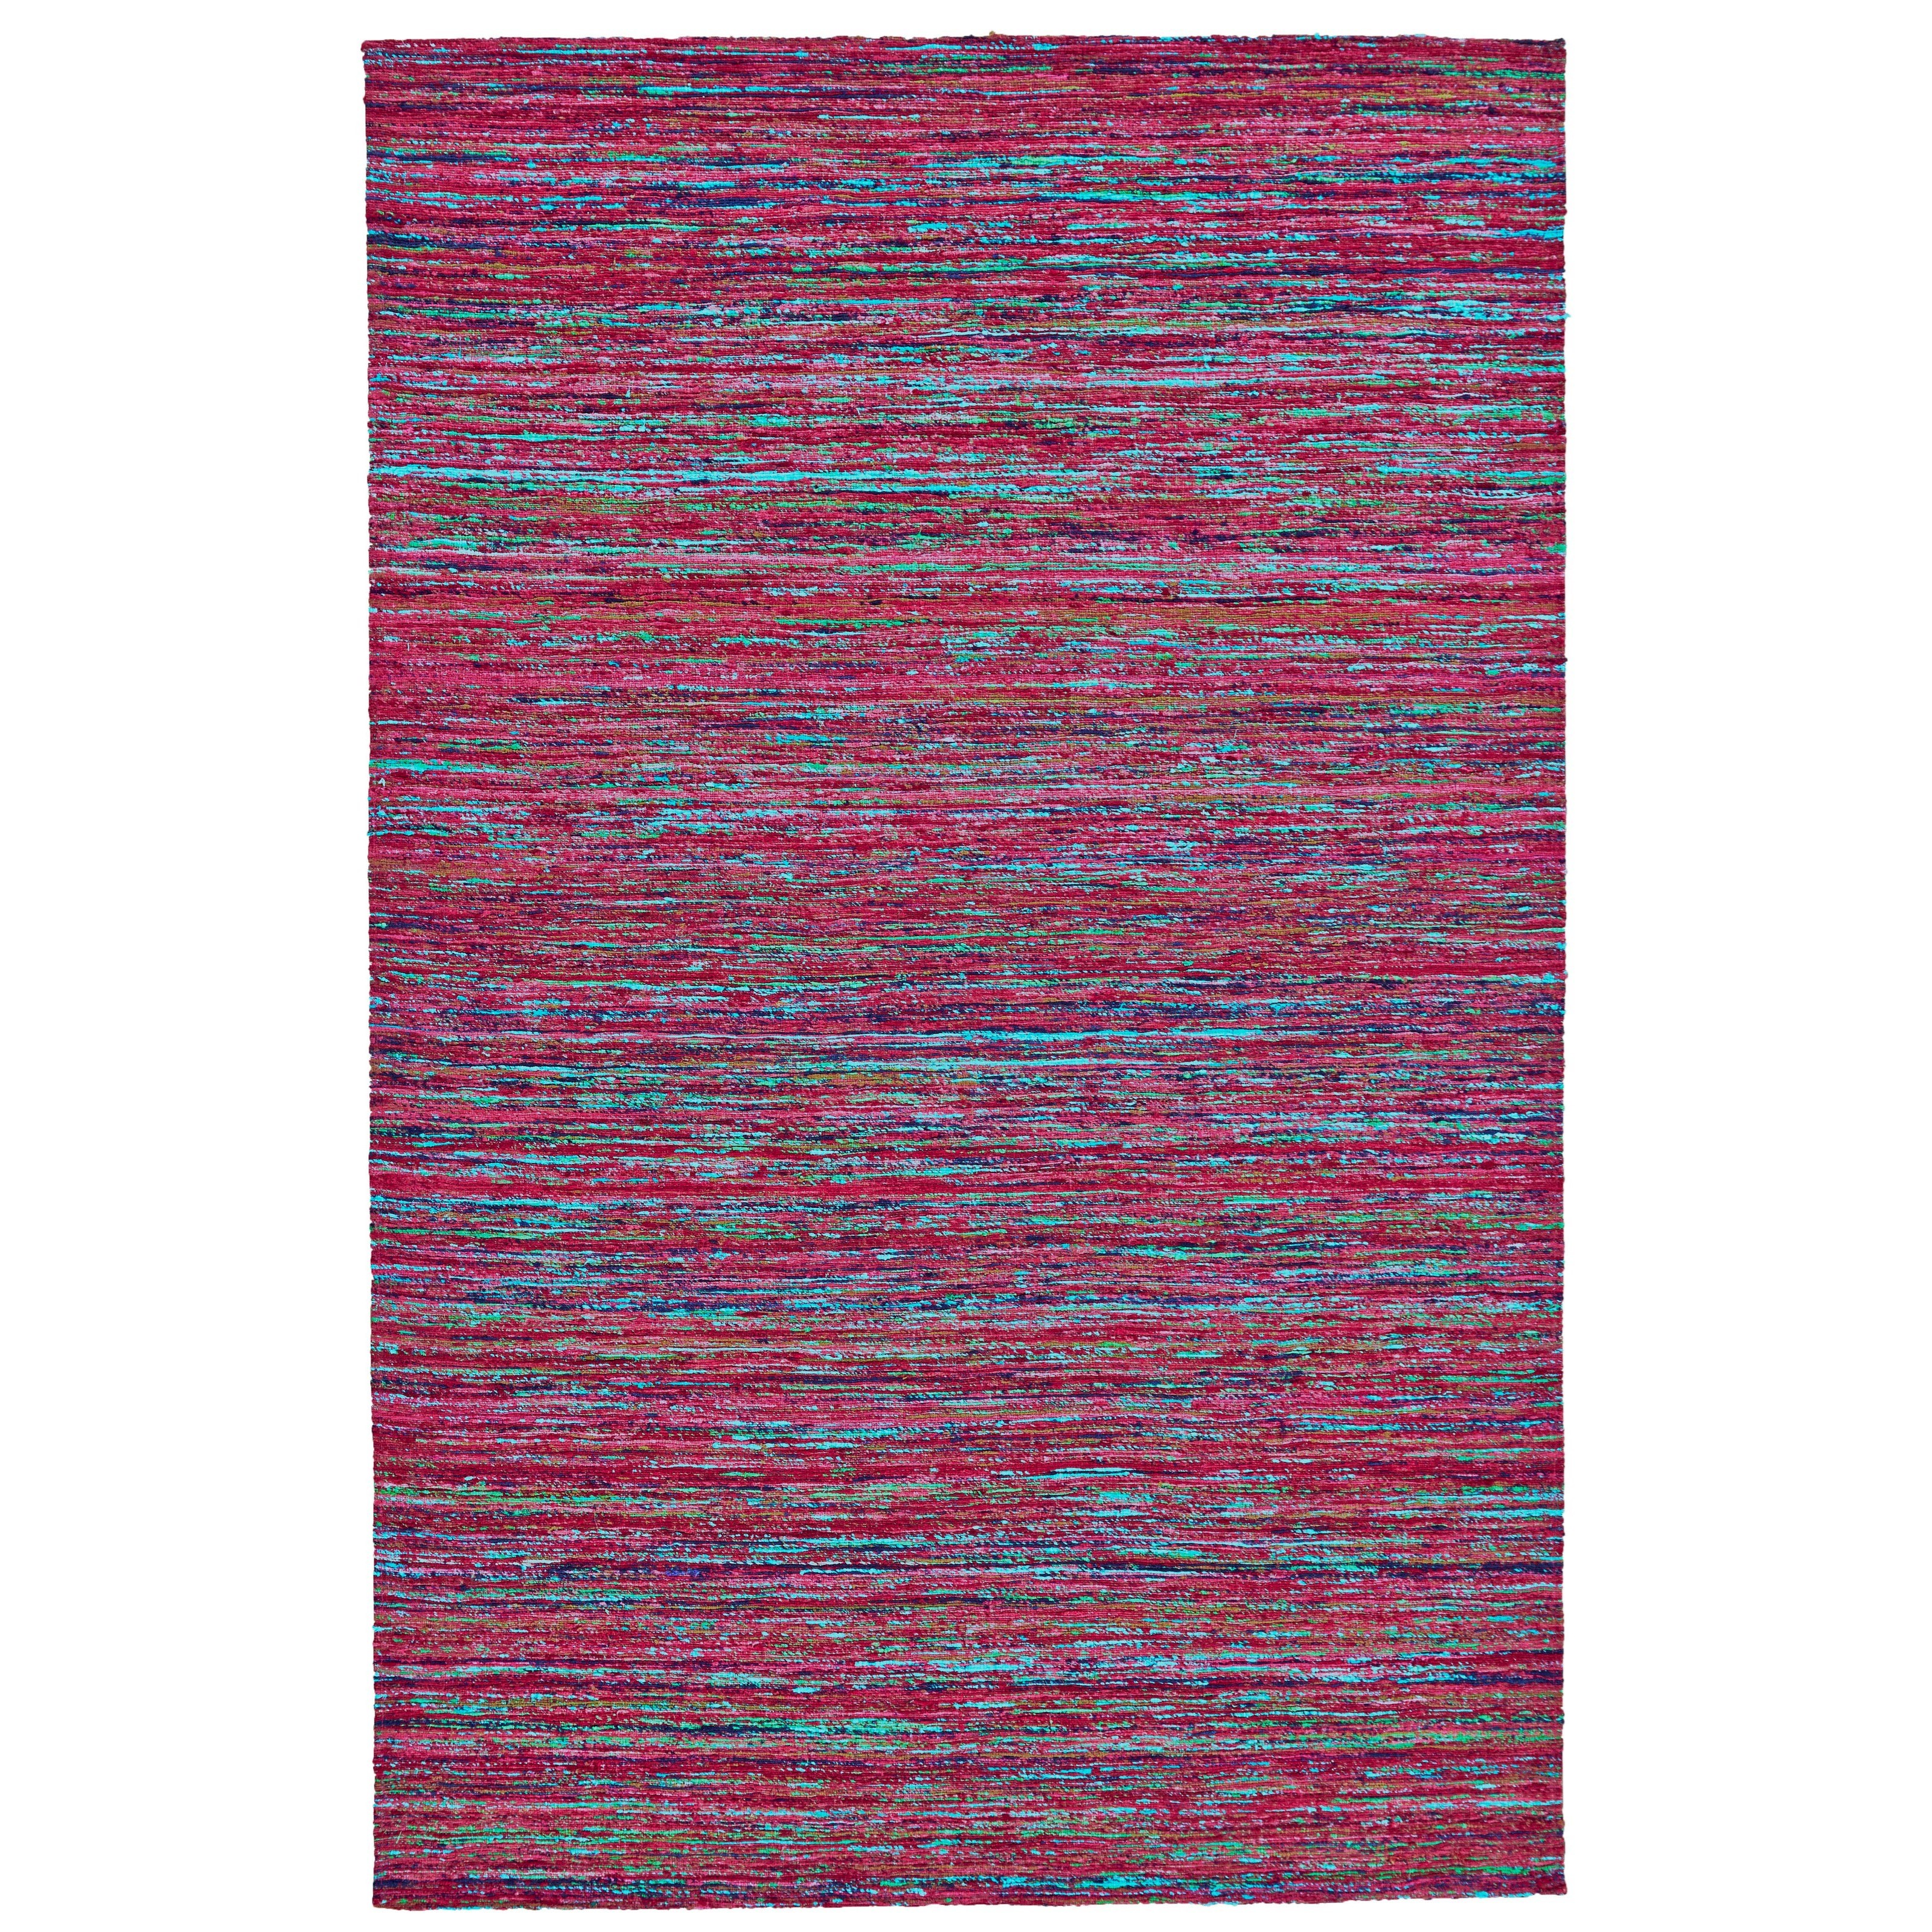 "Arushi Fuchsia 3'-6"" x 5'-6"" Area Rug by Feizy Rugs at Sprintz Furniture"